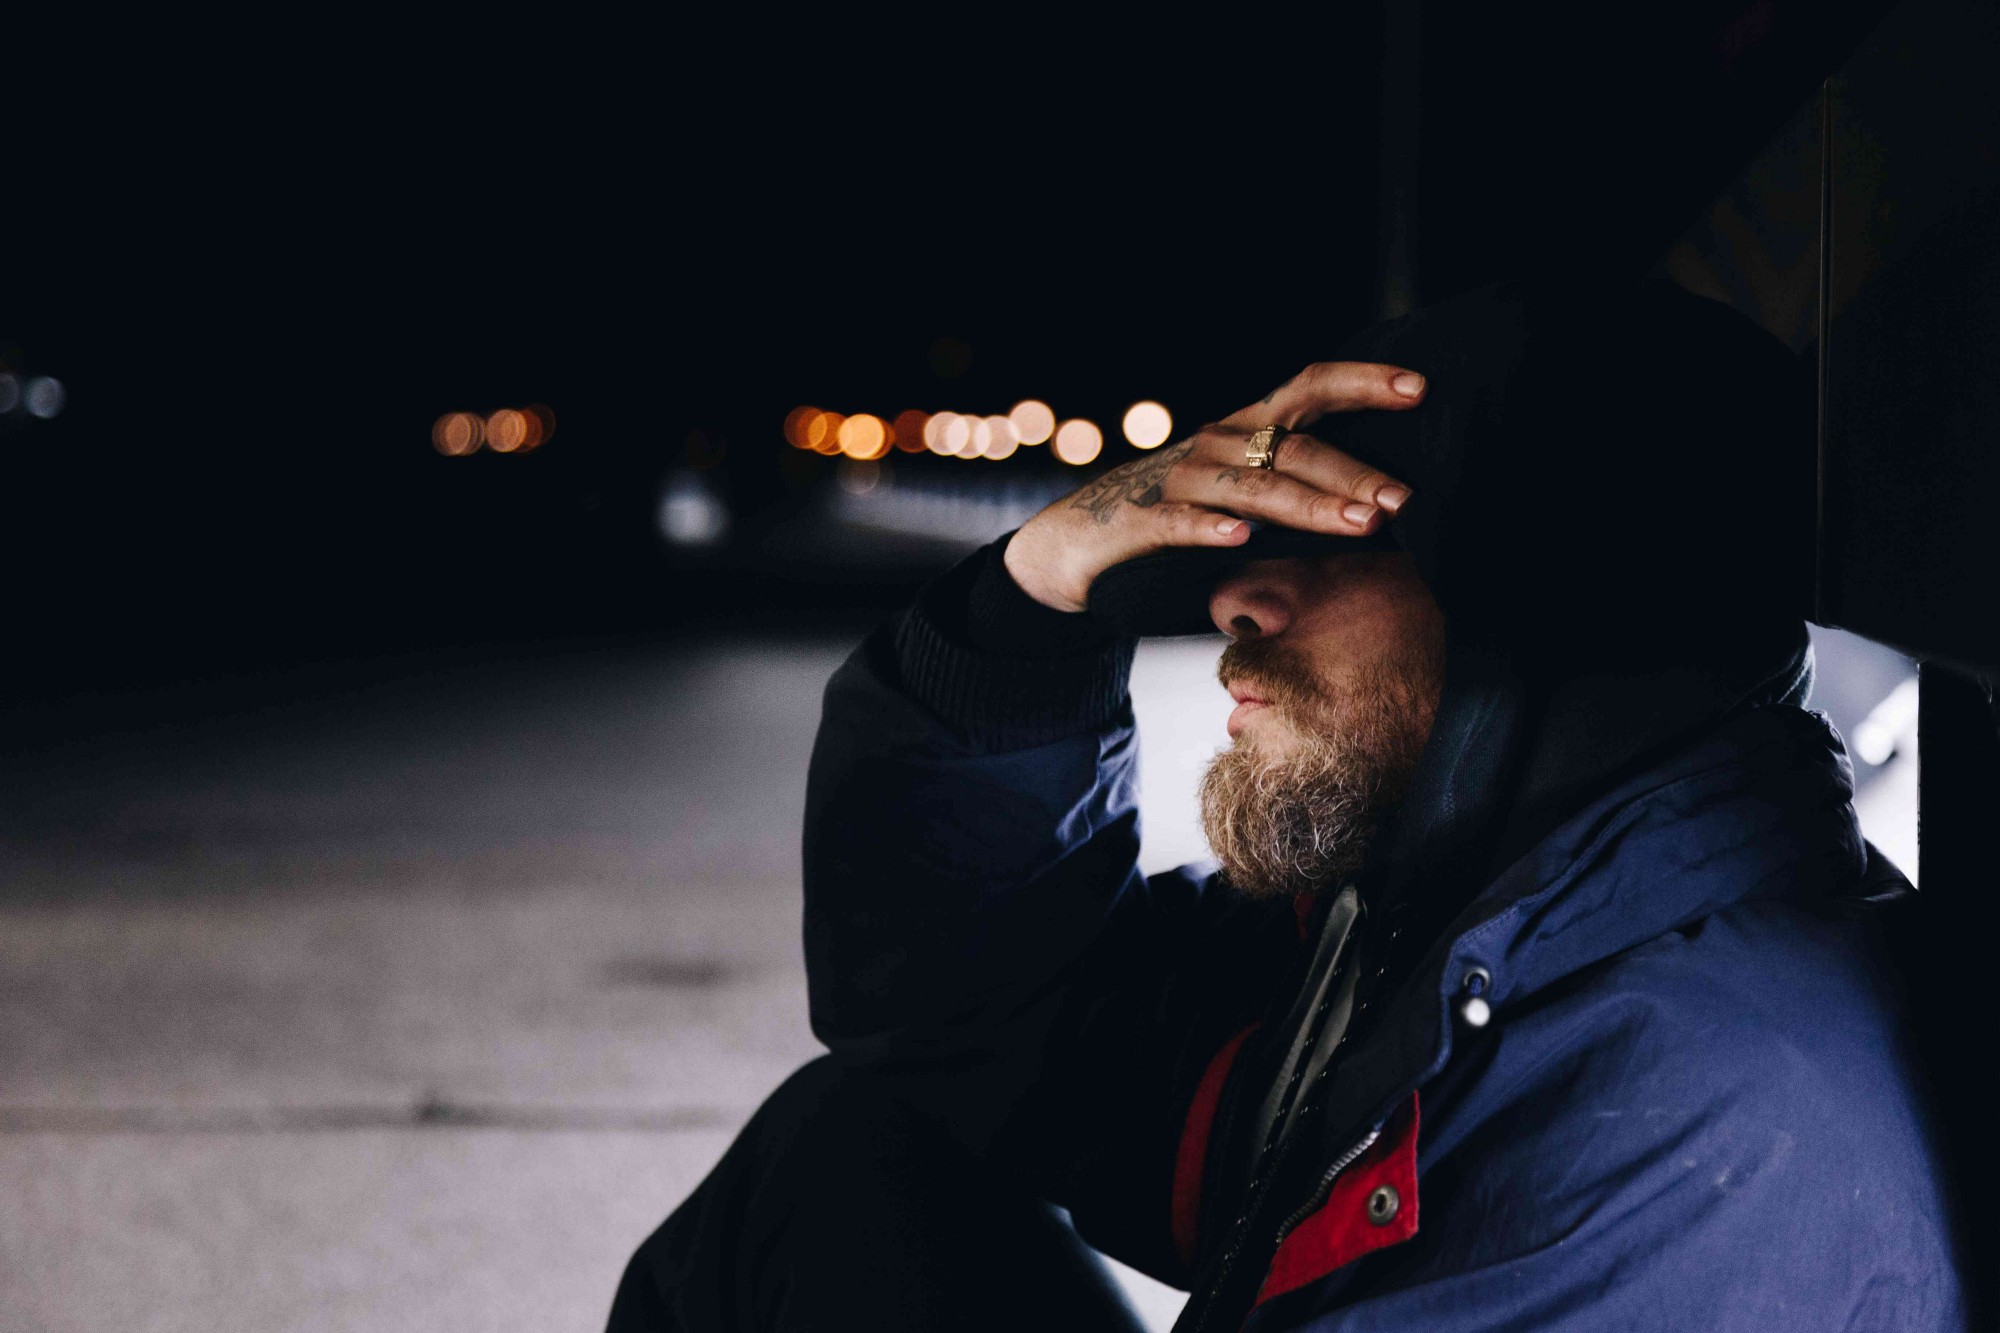 Man sitting on a sidewalk in the dark, with hand covering eyes.